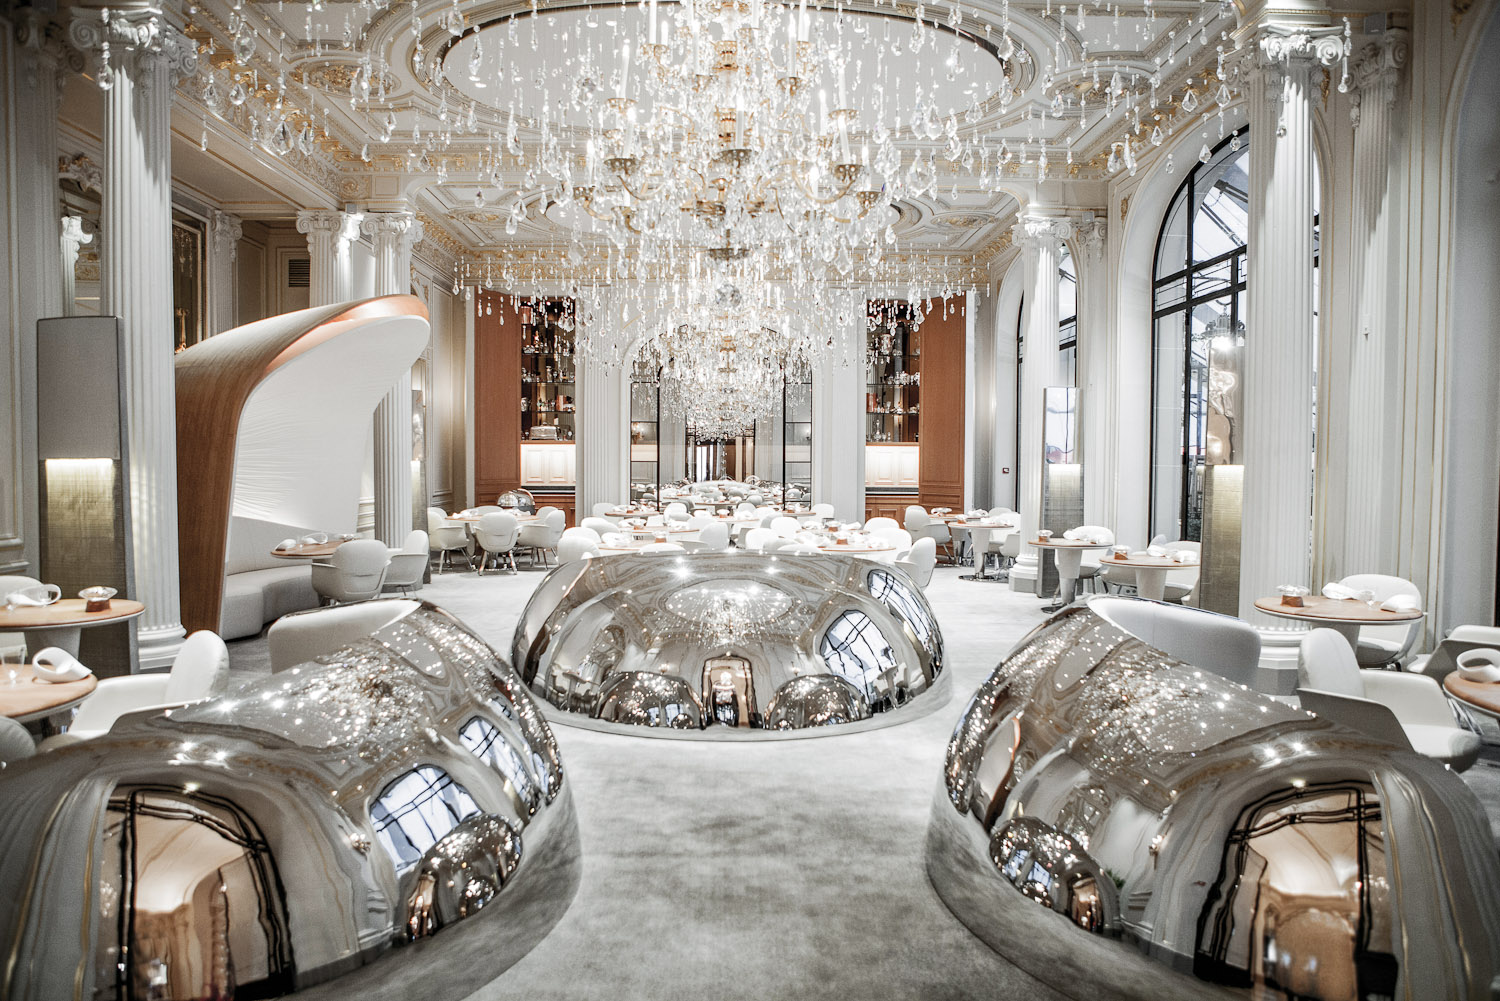 The restaurant area at Hotel Plaza Athenee, Paris.